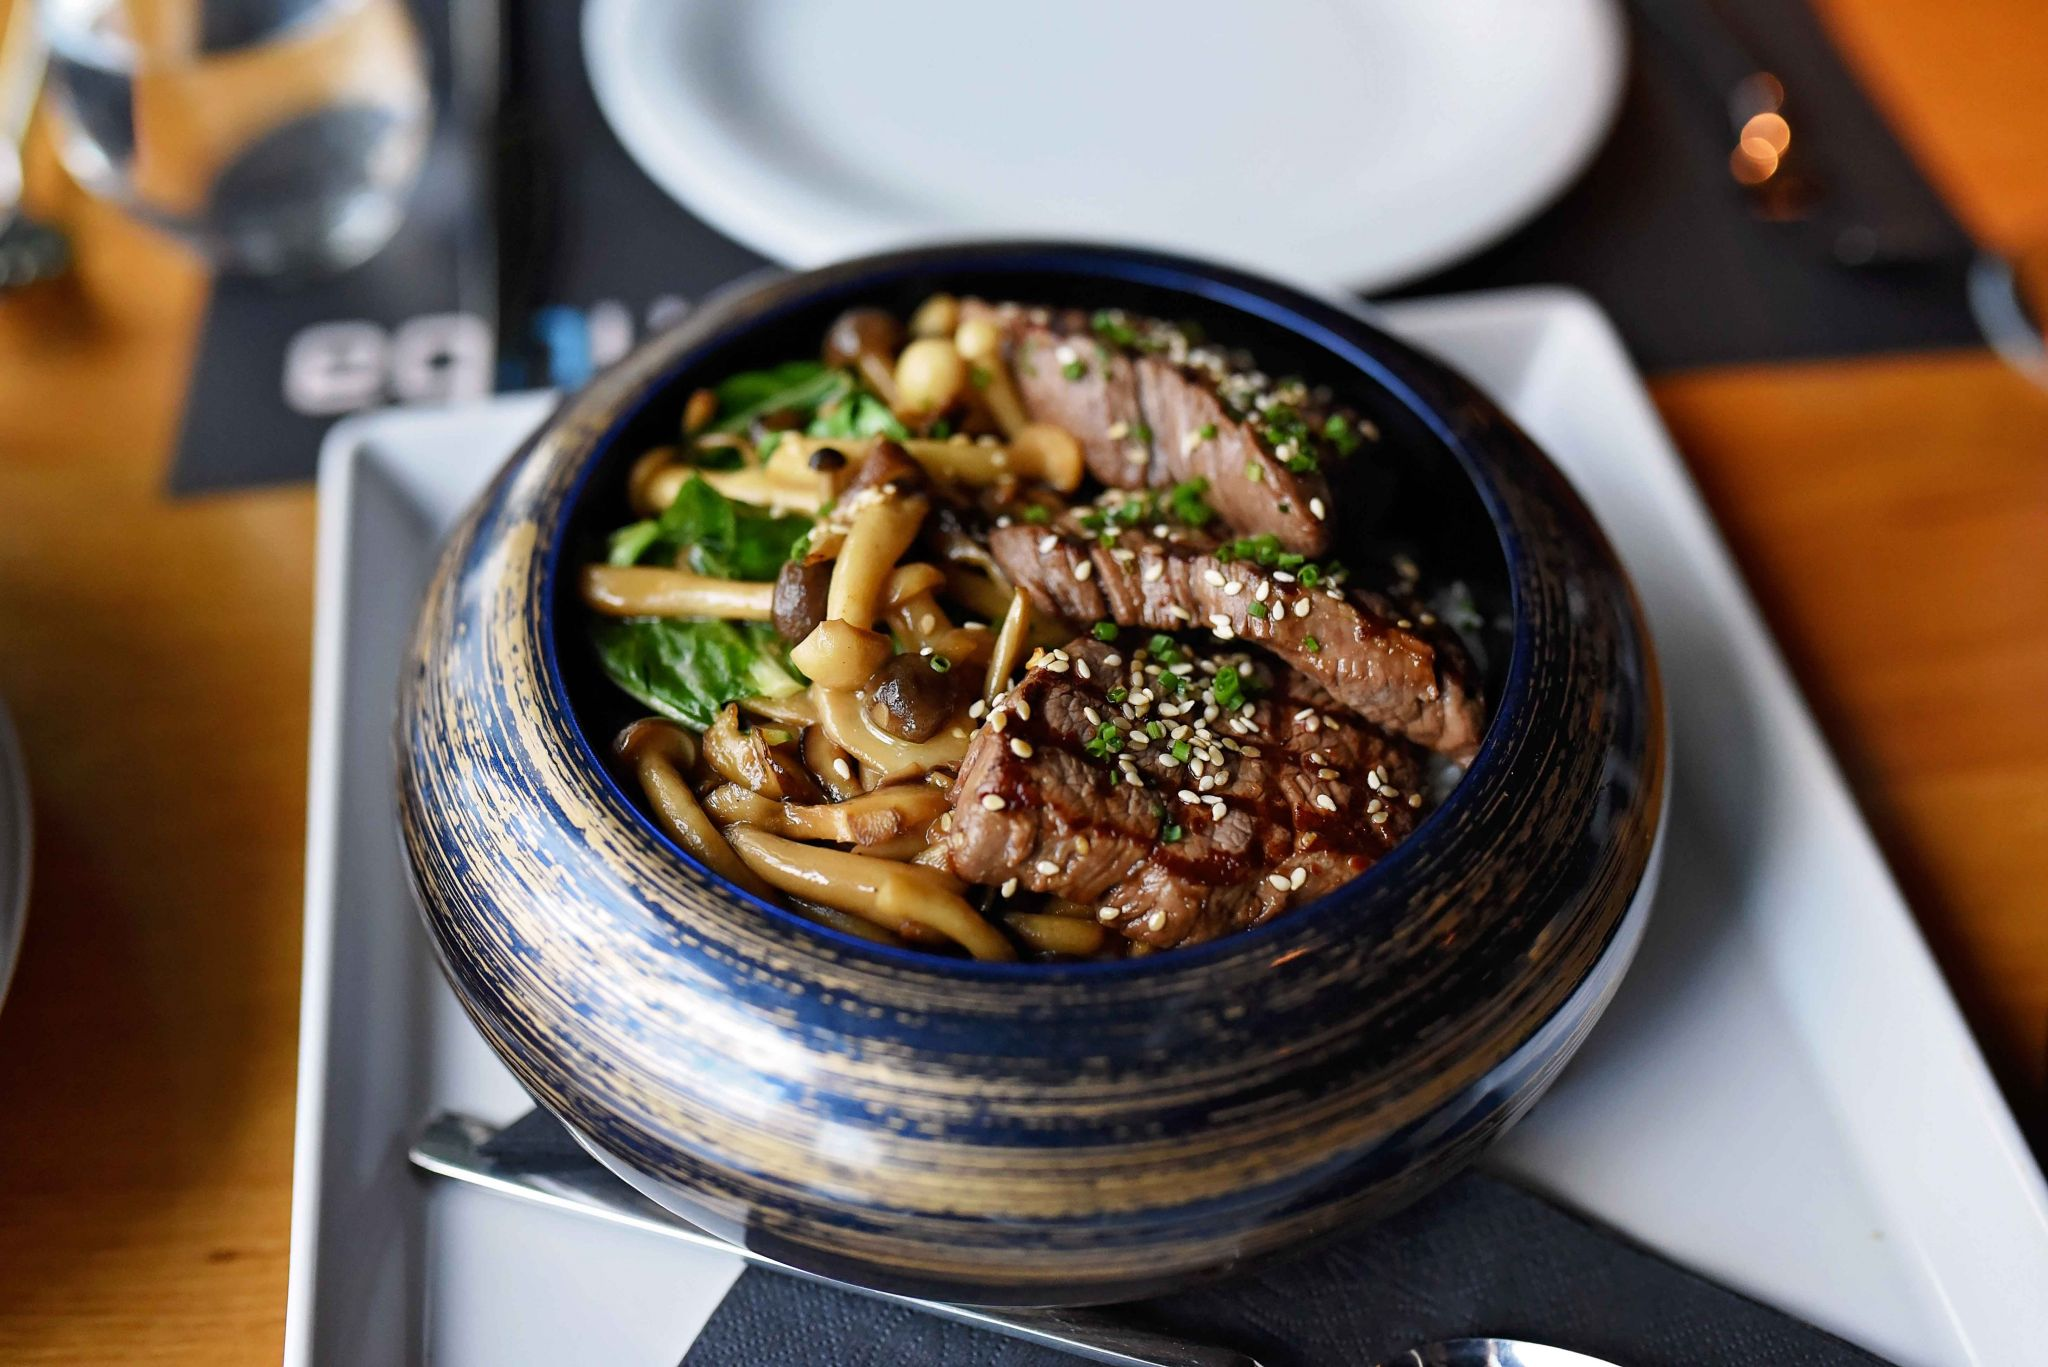 BEEF DONBURI nuba bucharest